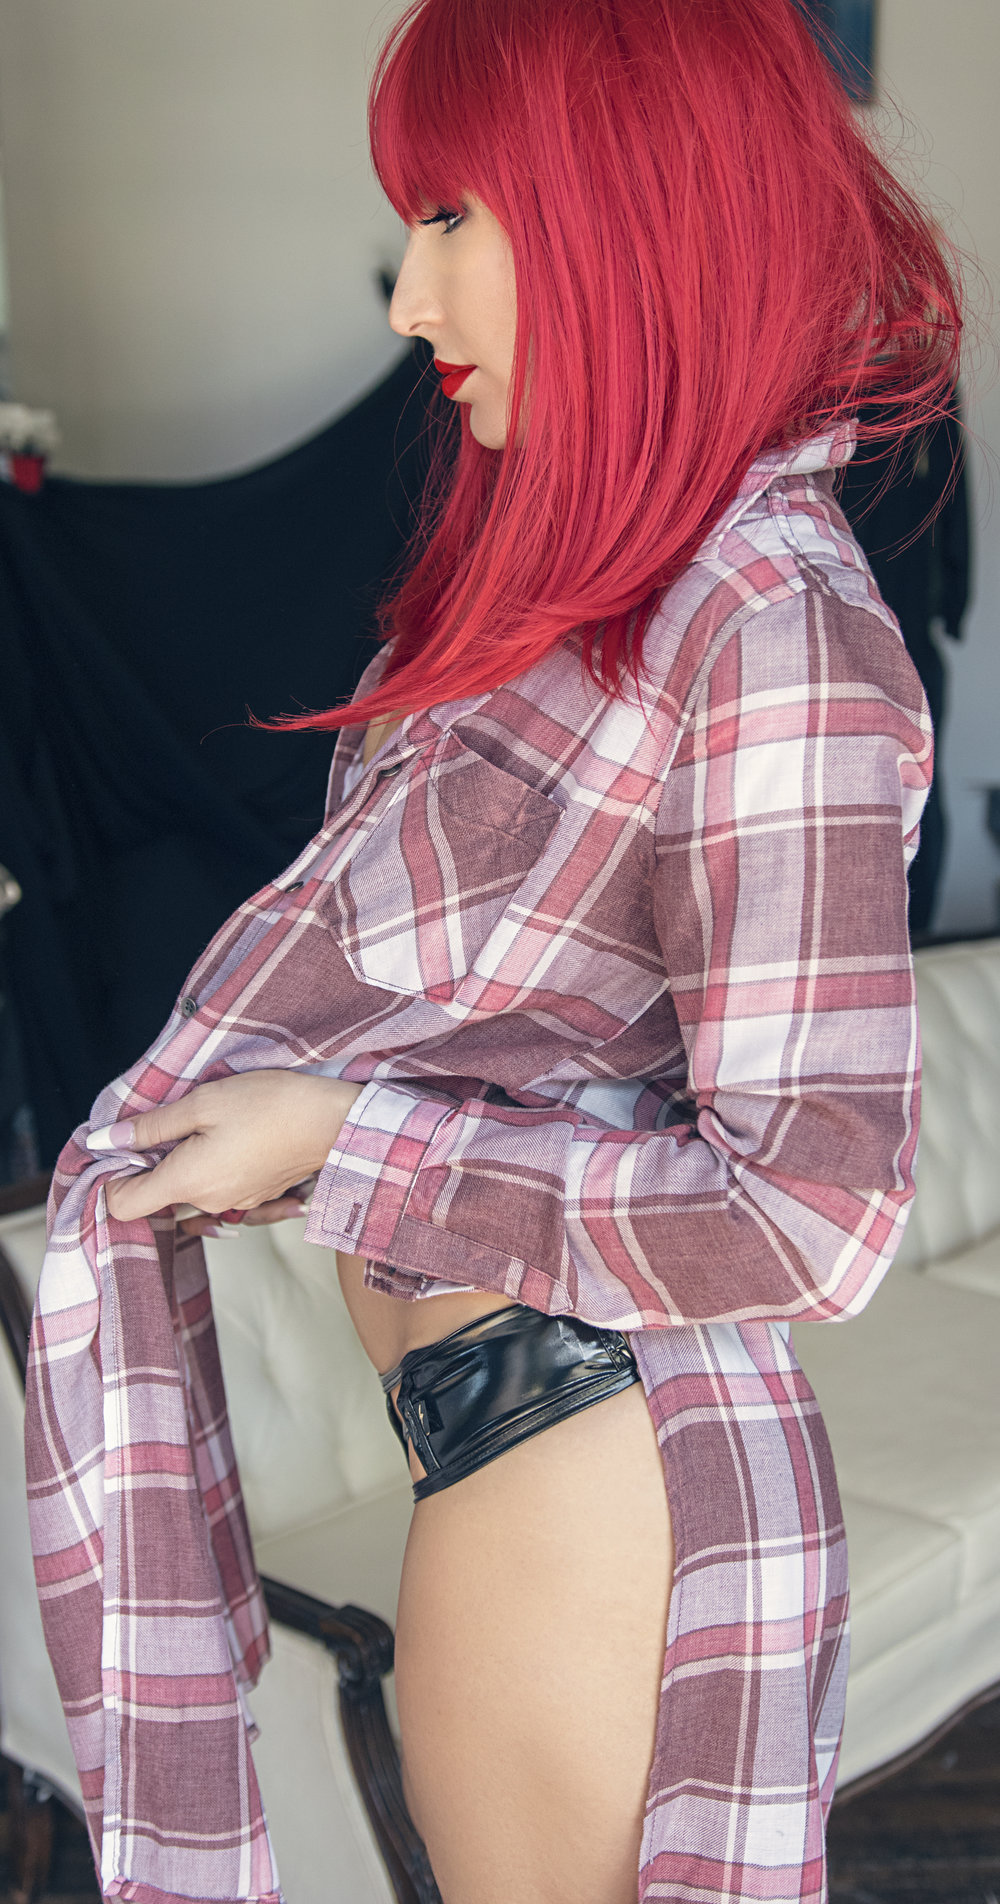 Shown in photo is our owner, Brandi in our new flannel dusters.